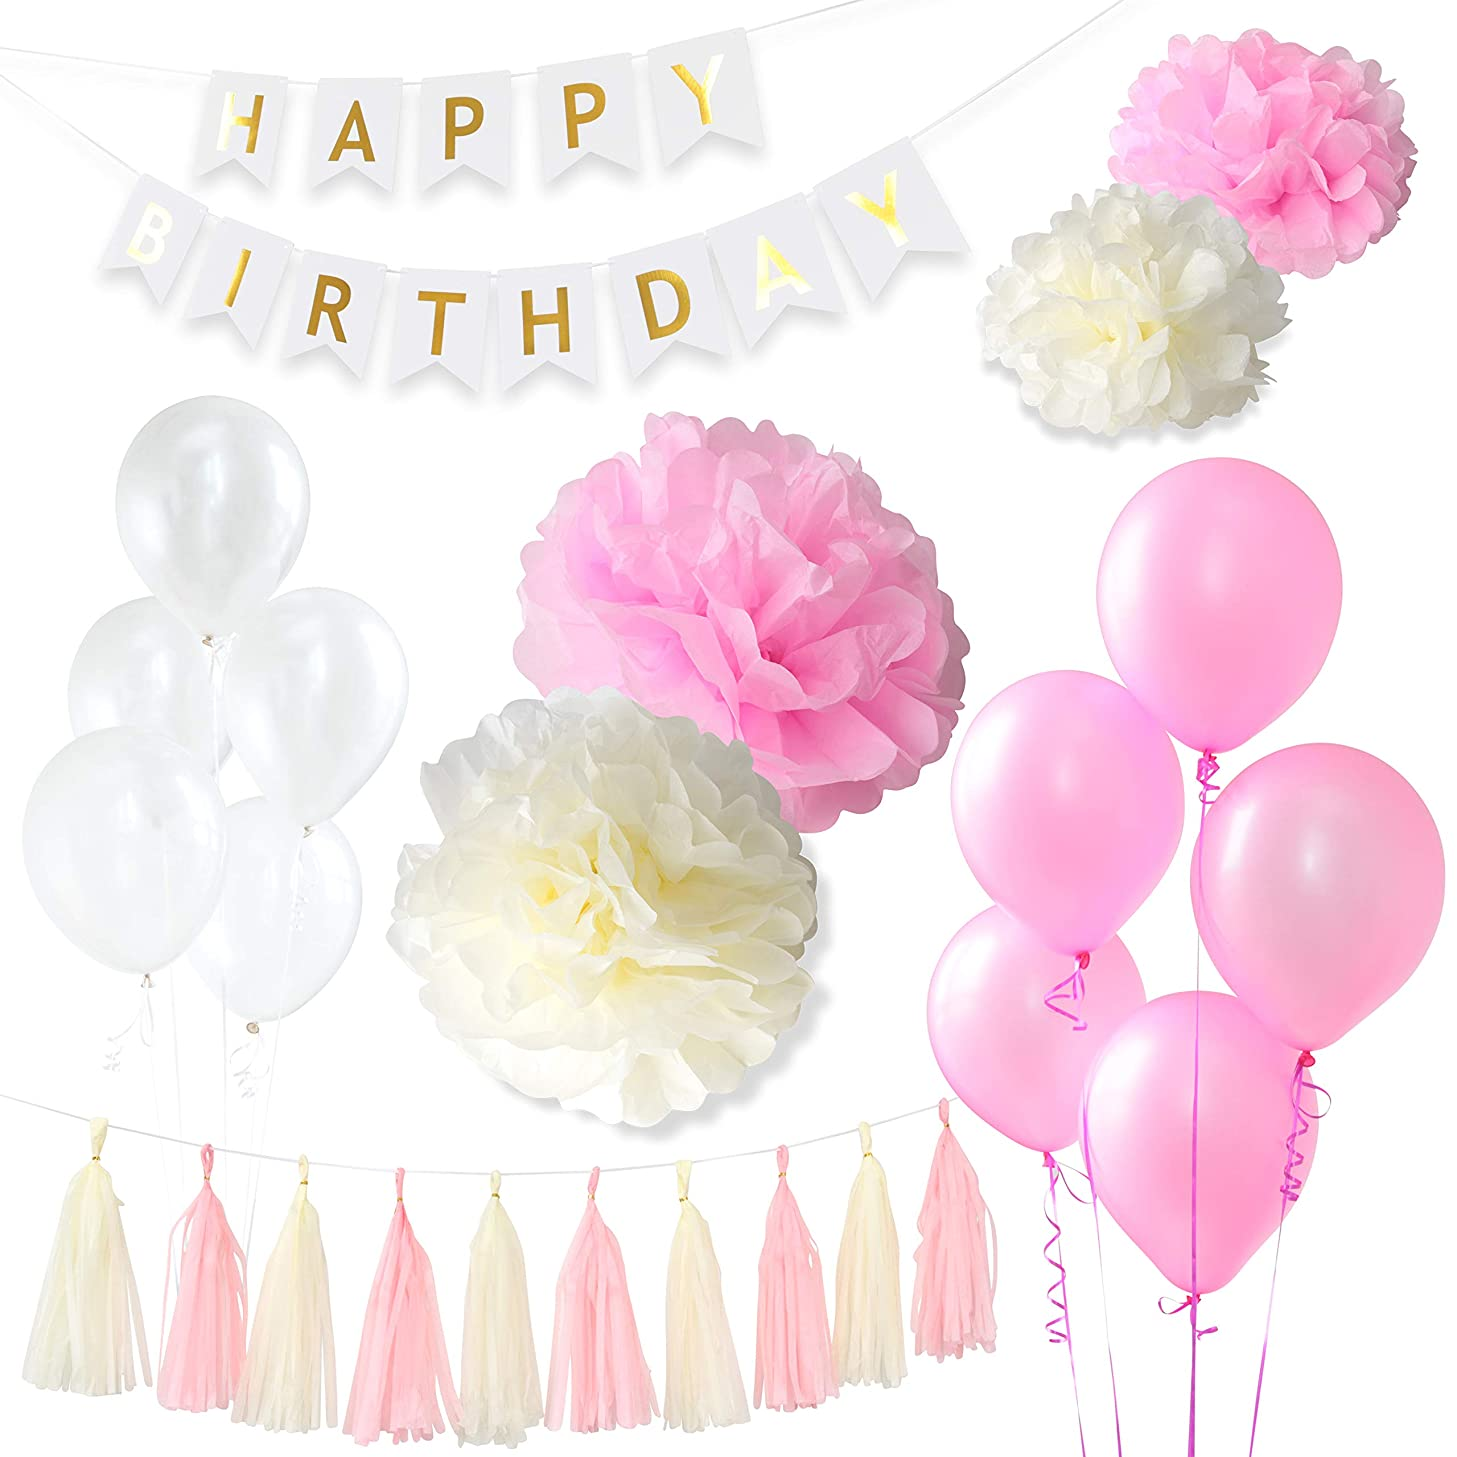 GreenBic Pink, White and Gold Birthday Decorations Bundle - Includes Happy Birthday Banner with Paper Flower Pom Poms, Tissue Tassels, Balloons, Great Decorations Pack for Boys or Girls Birthday Party